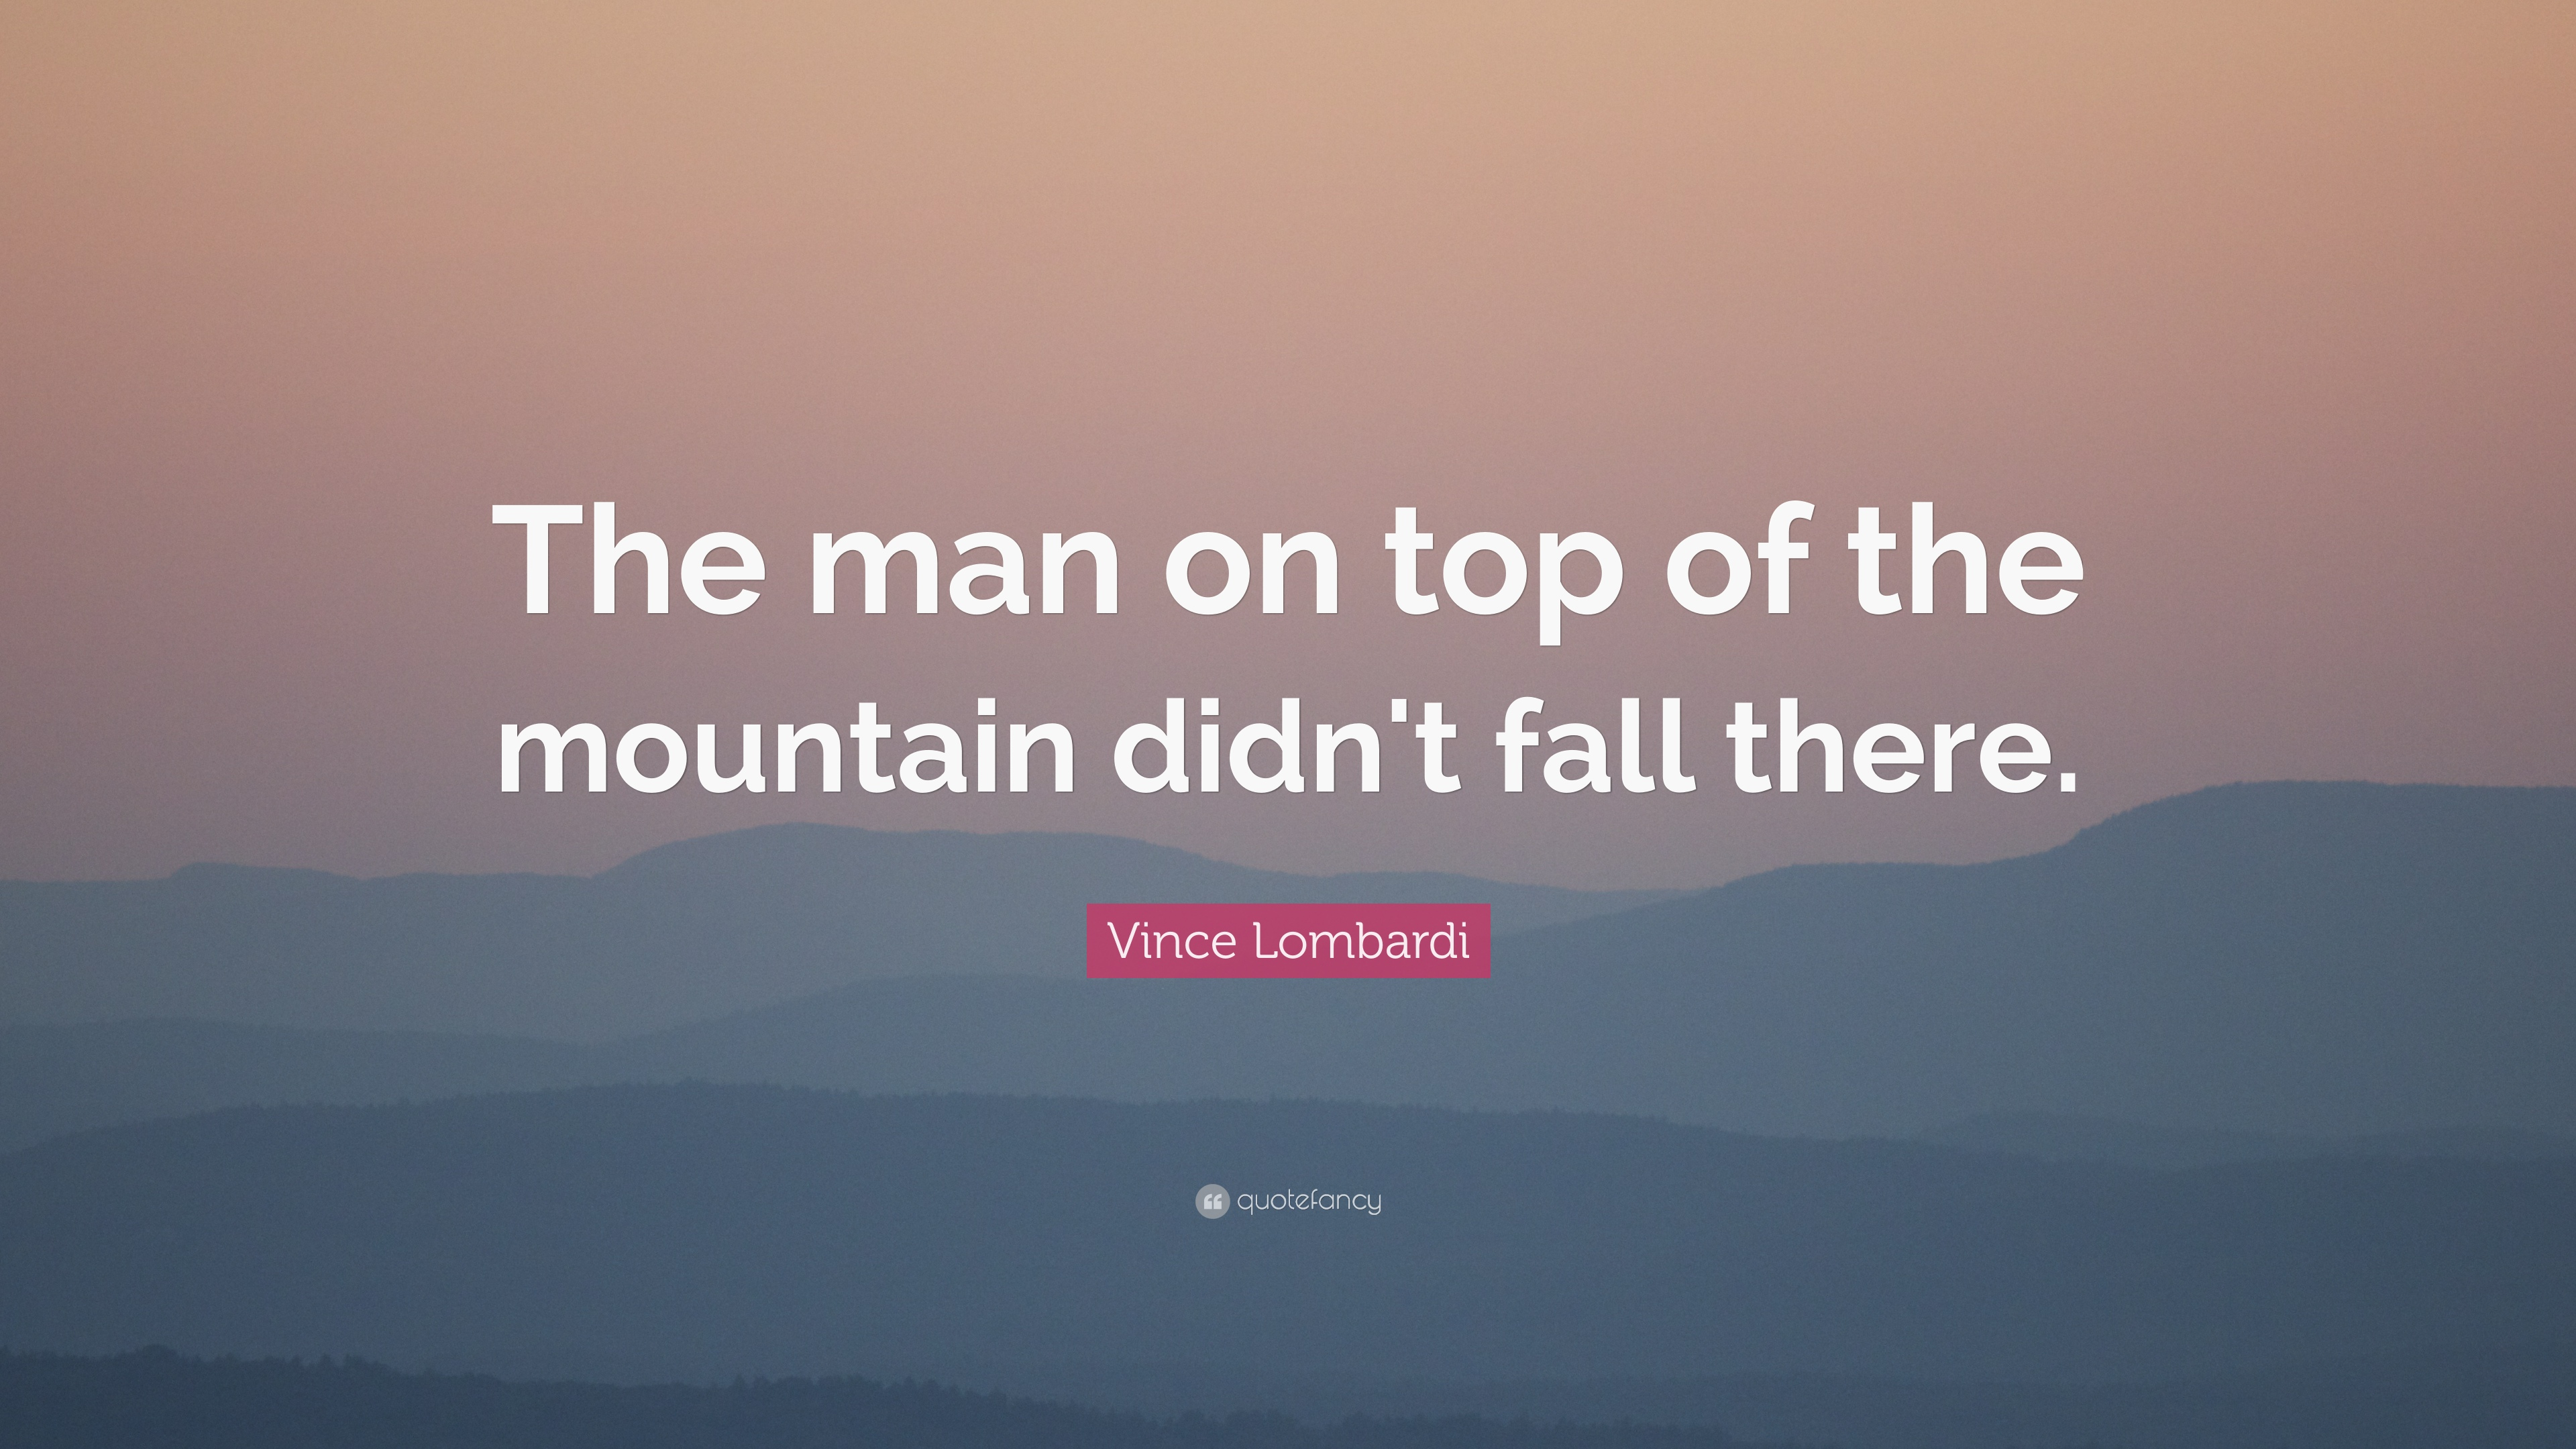 Fall Wallpaper Images Vince Lombardi Quote The Man On Top Of The Mountain Didn